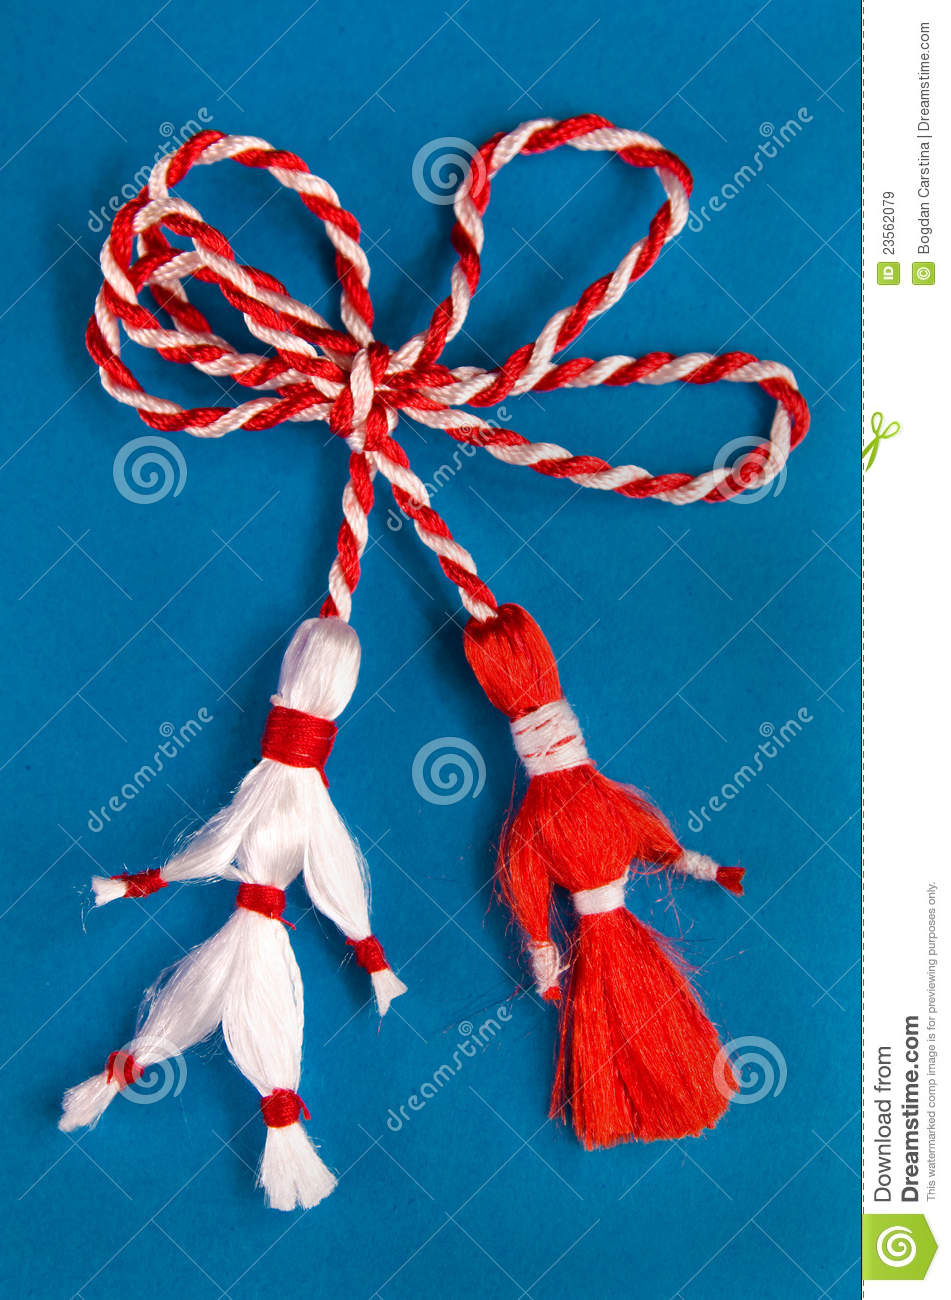 Martisor - Spring Holiday Royalty Free Stock Images ...